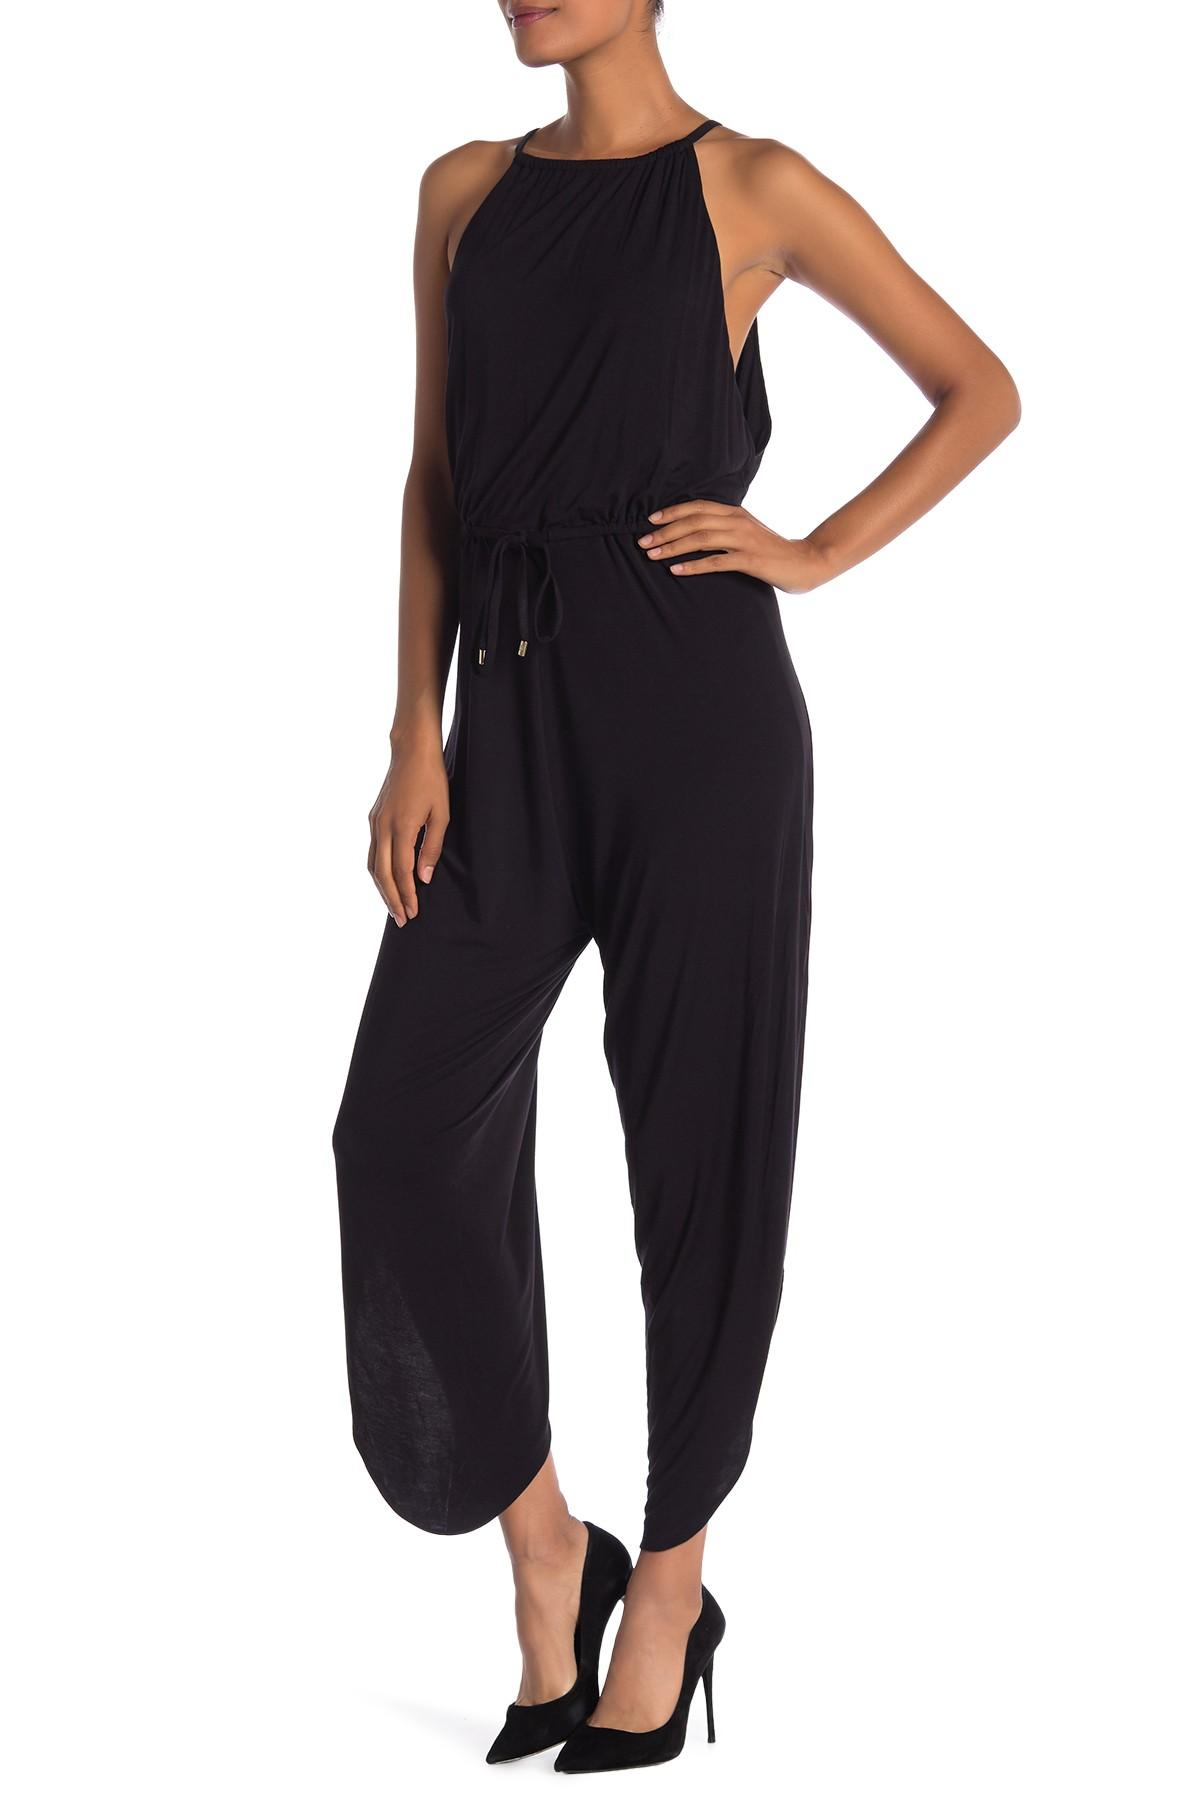 2c15e0c47ac Lyst - Laundry by Shelli Segal Side Slit Jumpsuit in Black